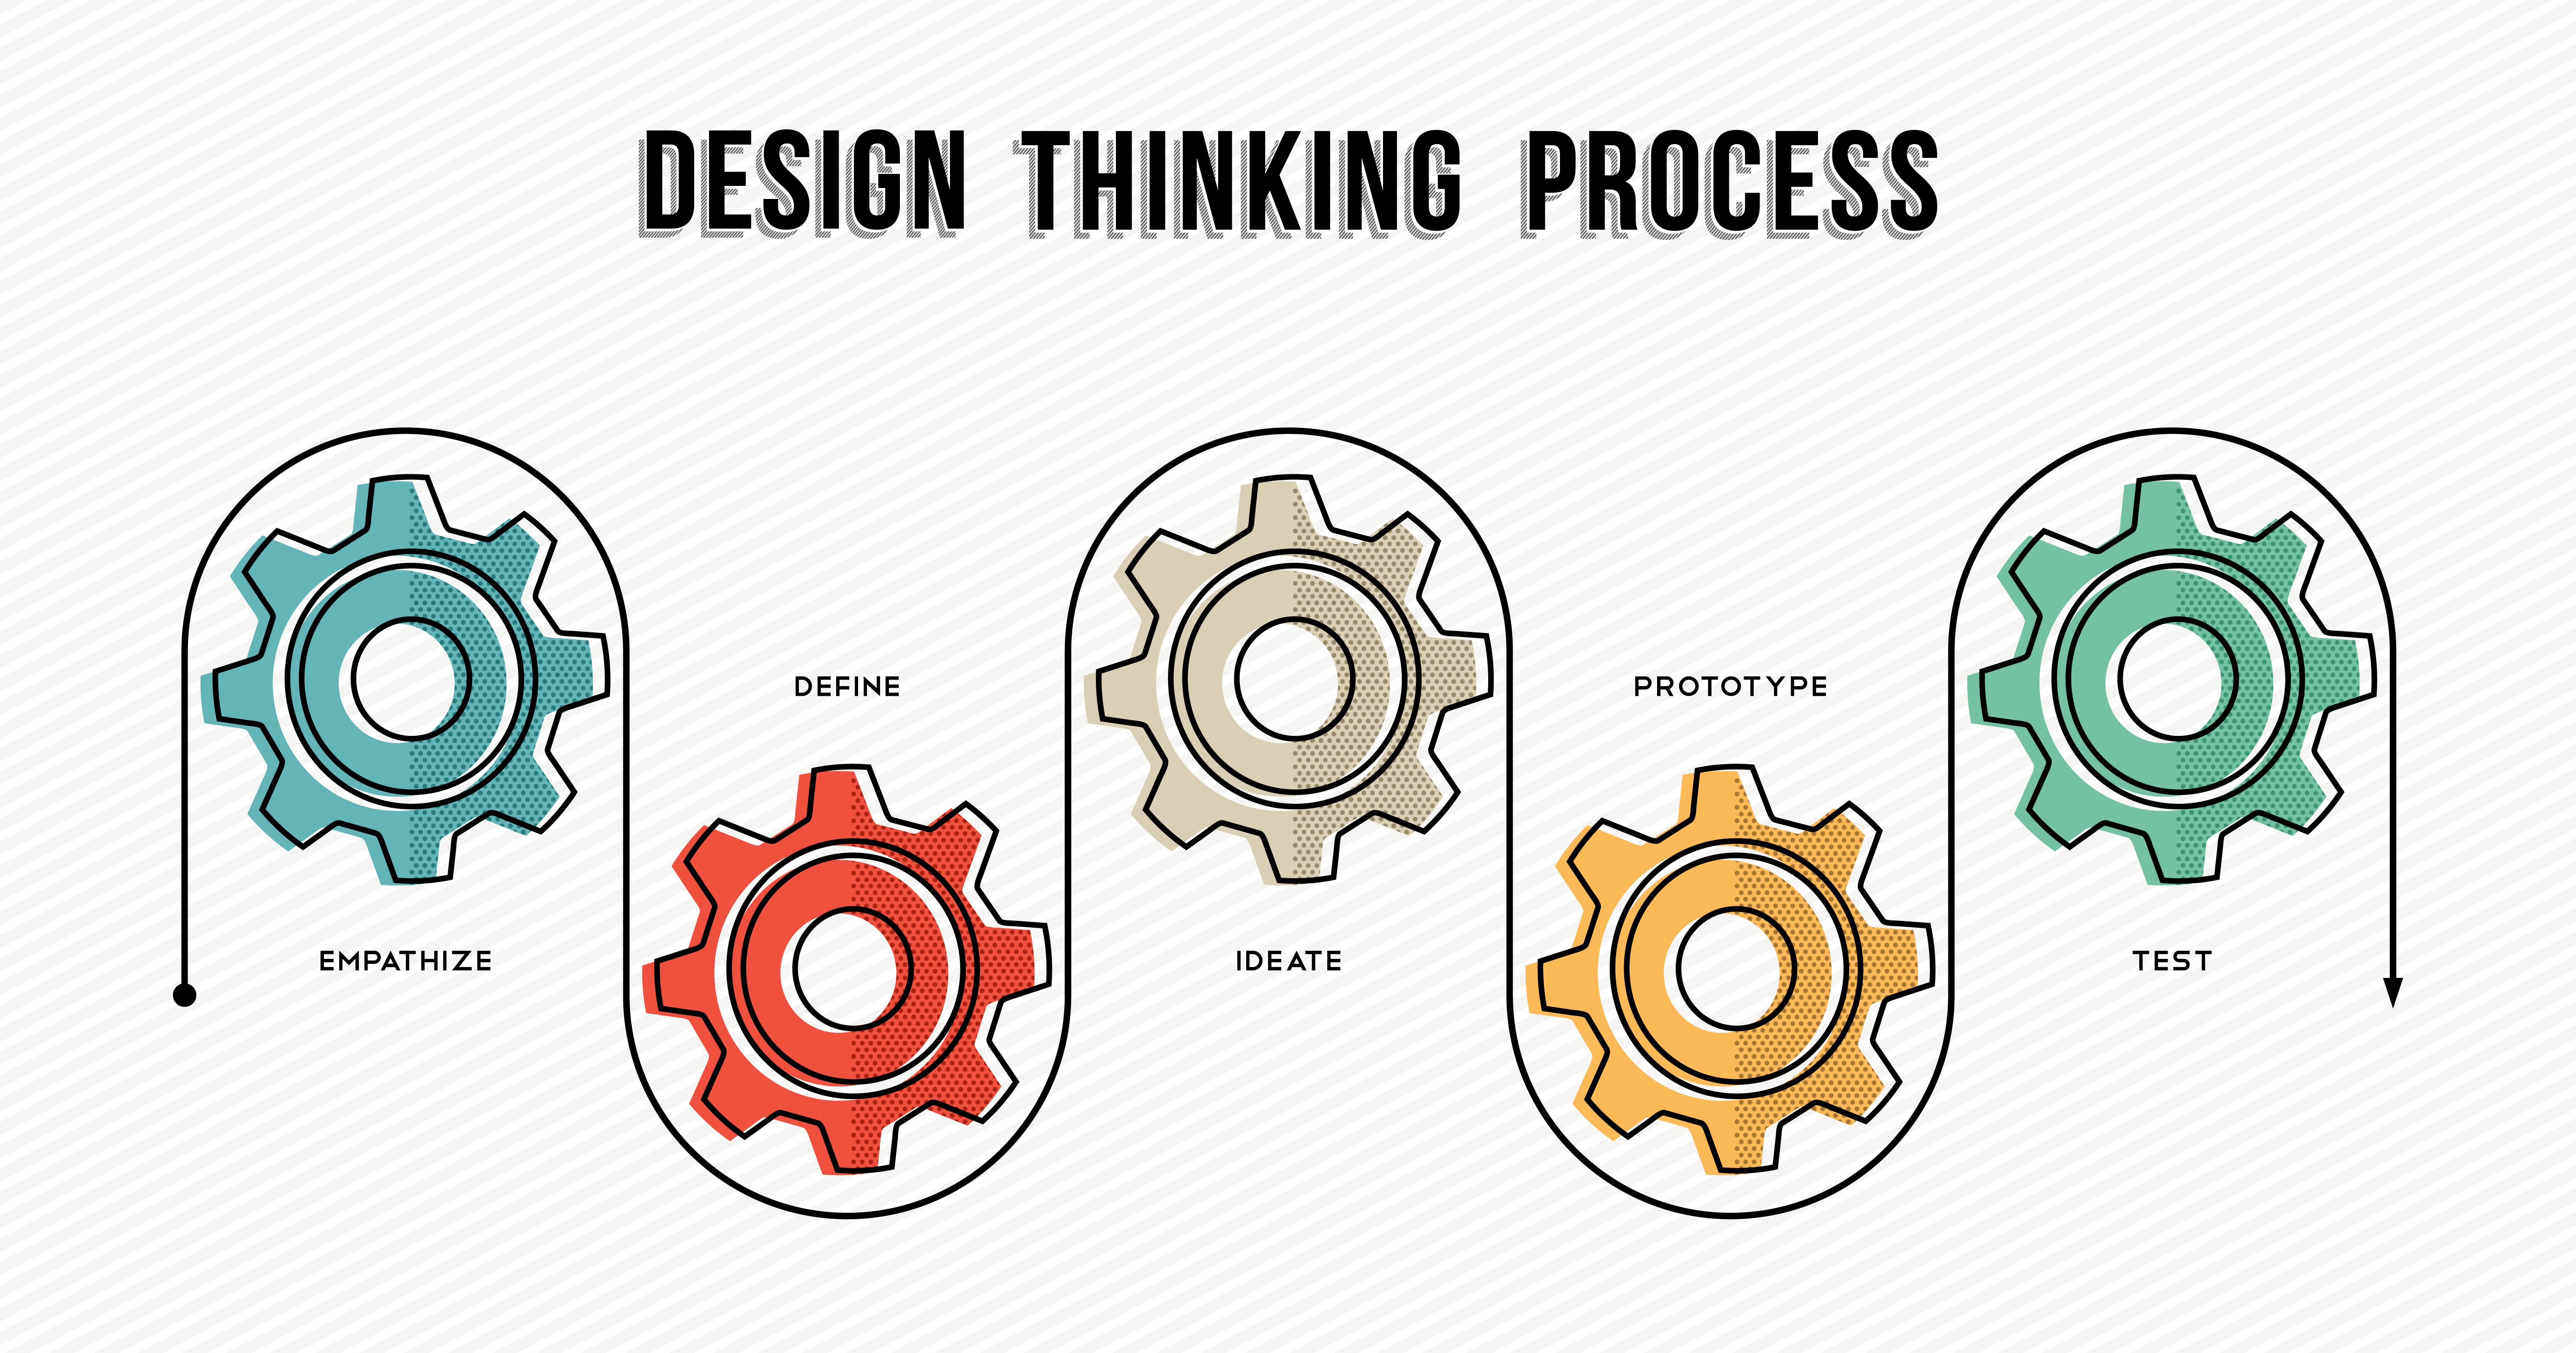 check the post:What Is Design Thinking? for a description of the image